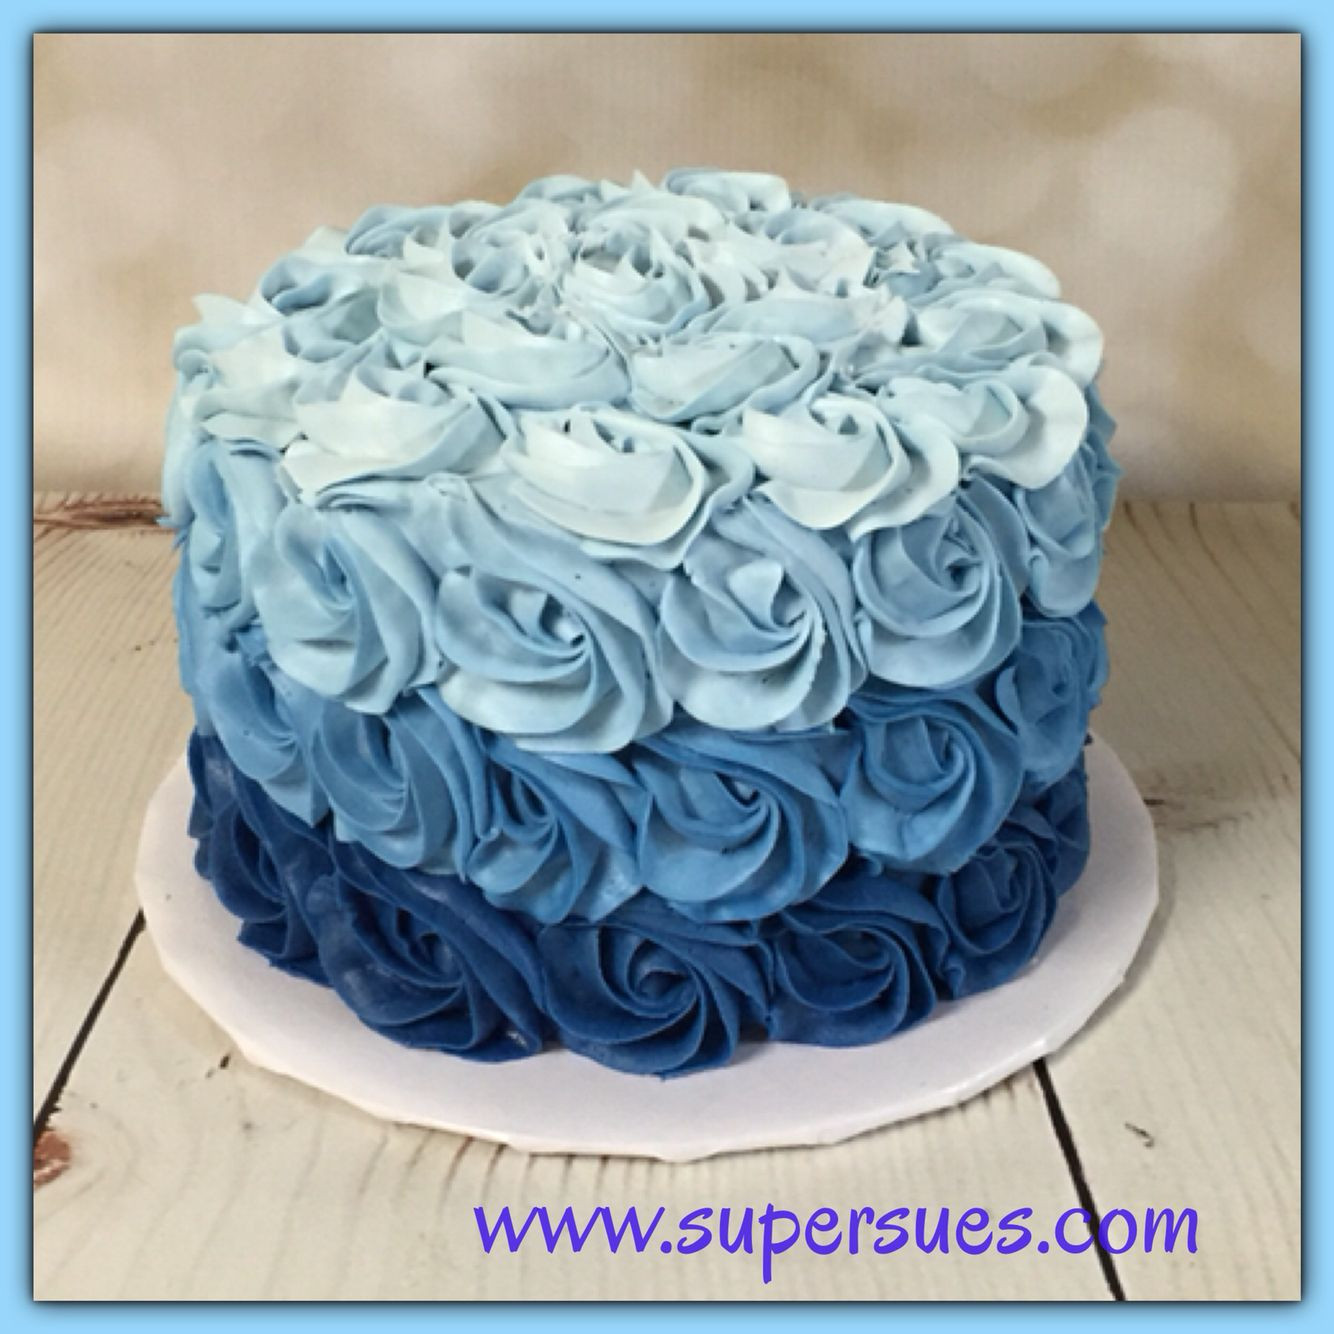 Best ideas about Blue Birthday Cake . Save or Pin Ombre blue buttercream rose smash cake Now.